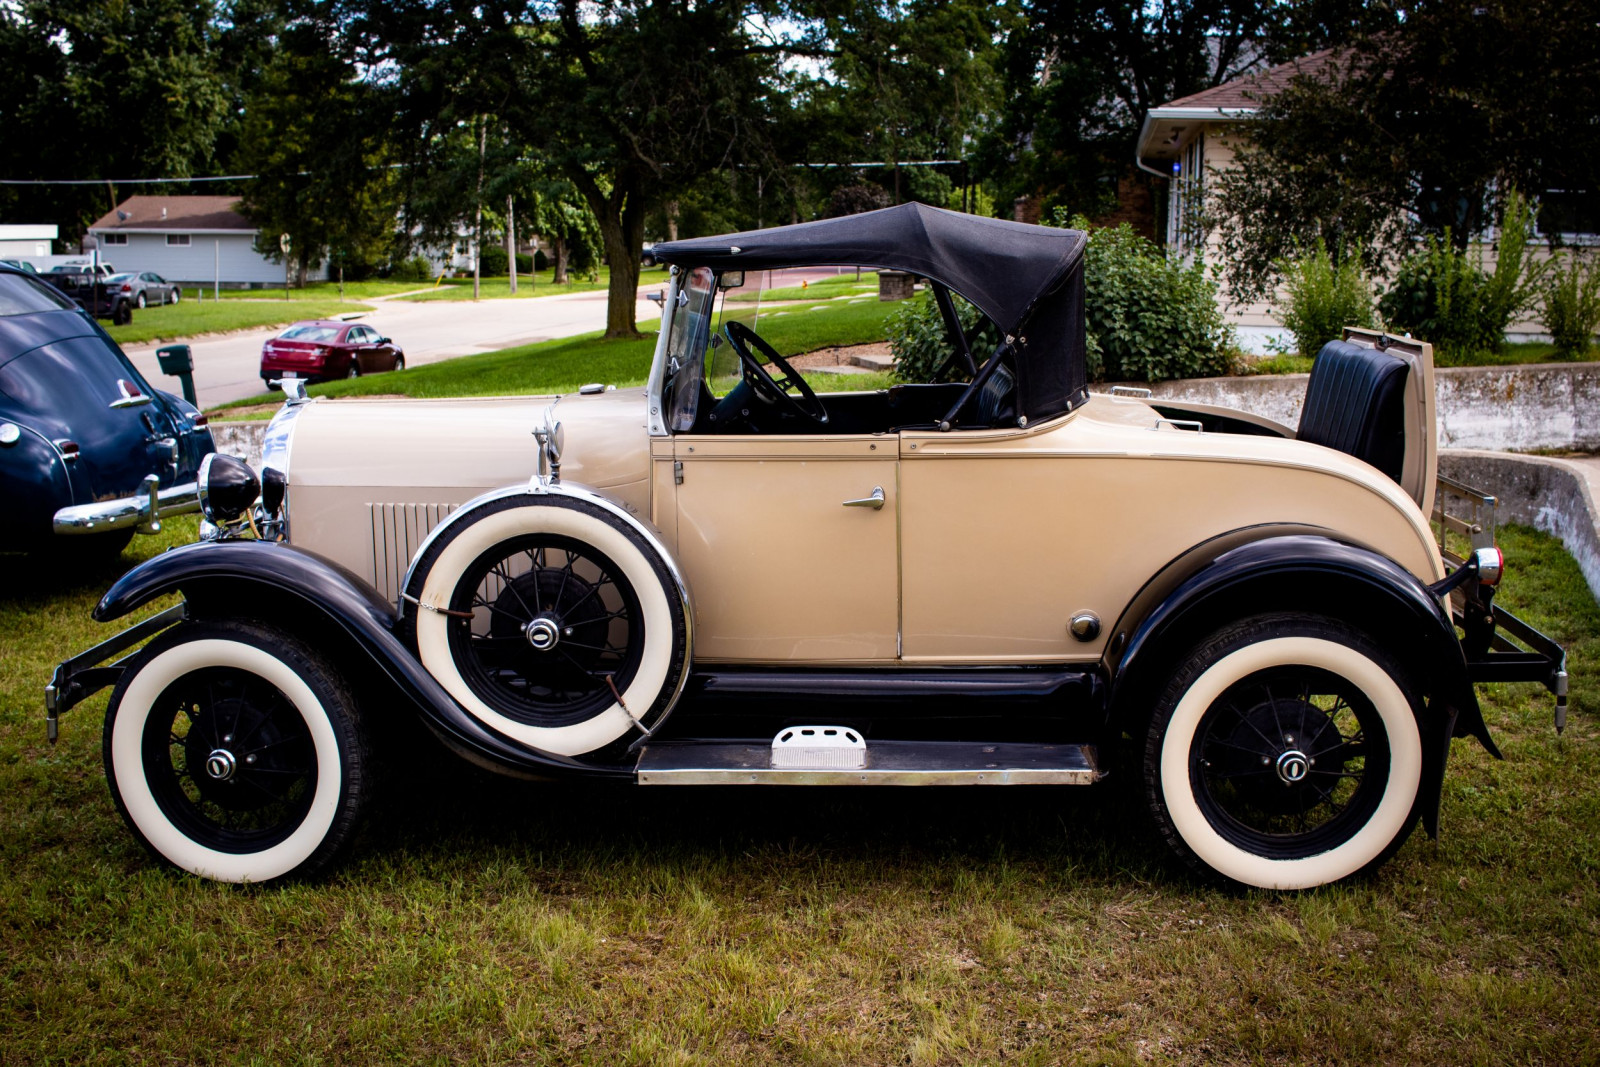 1980 Shay Model A Roadster - Image 8